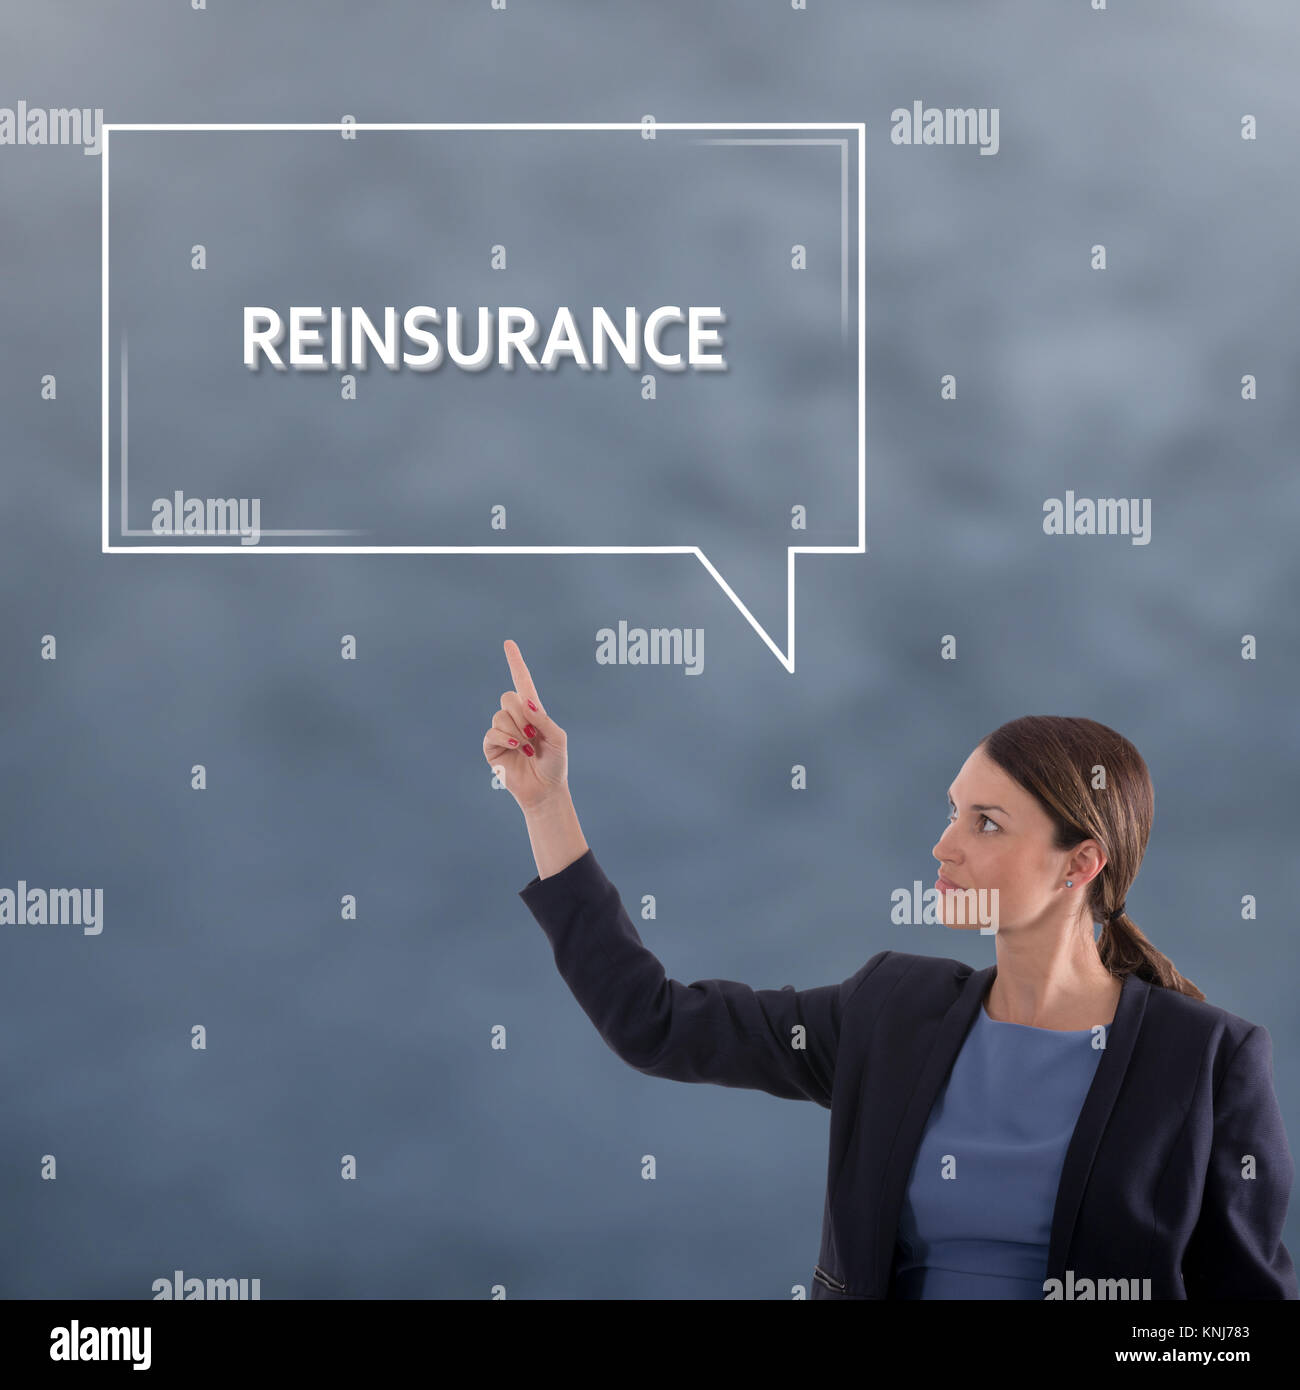 REINSURANCE Business Concept. Business Woman Graphic Concept - Stock Image